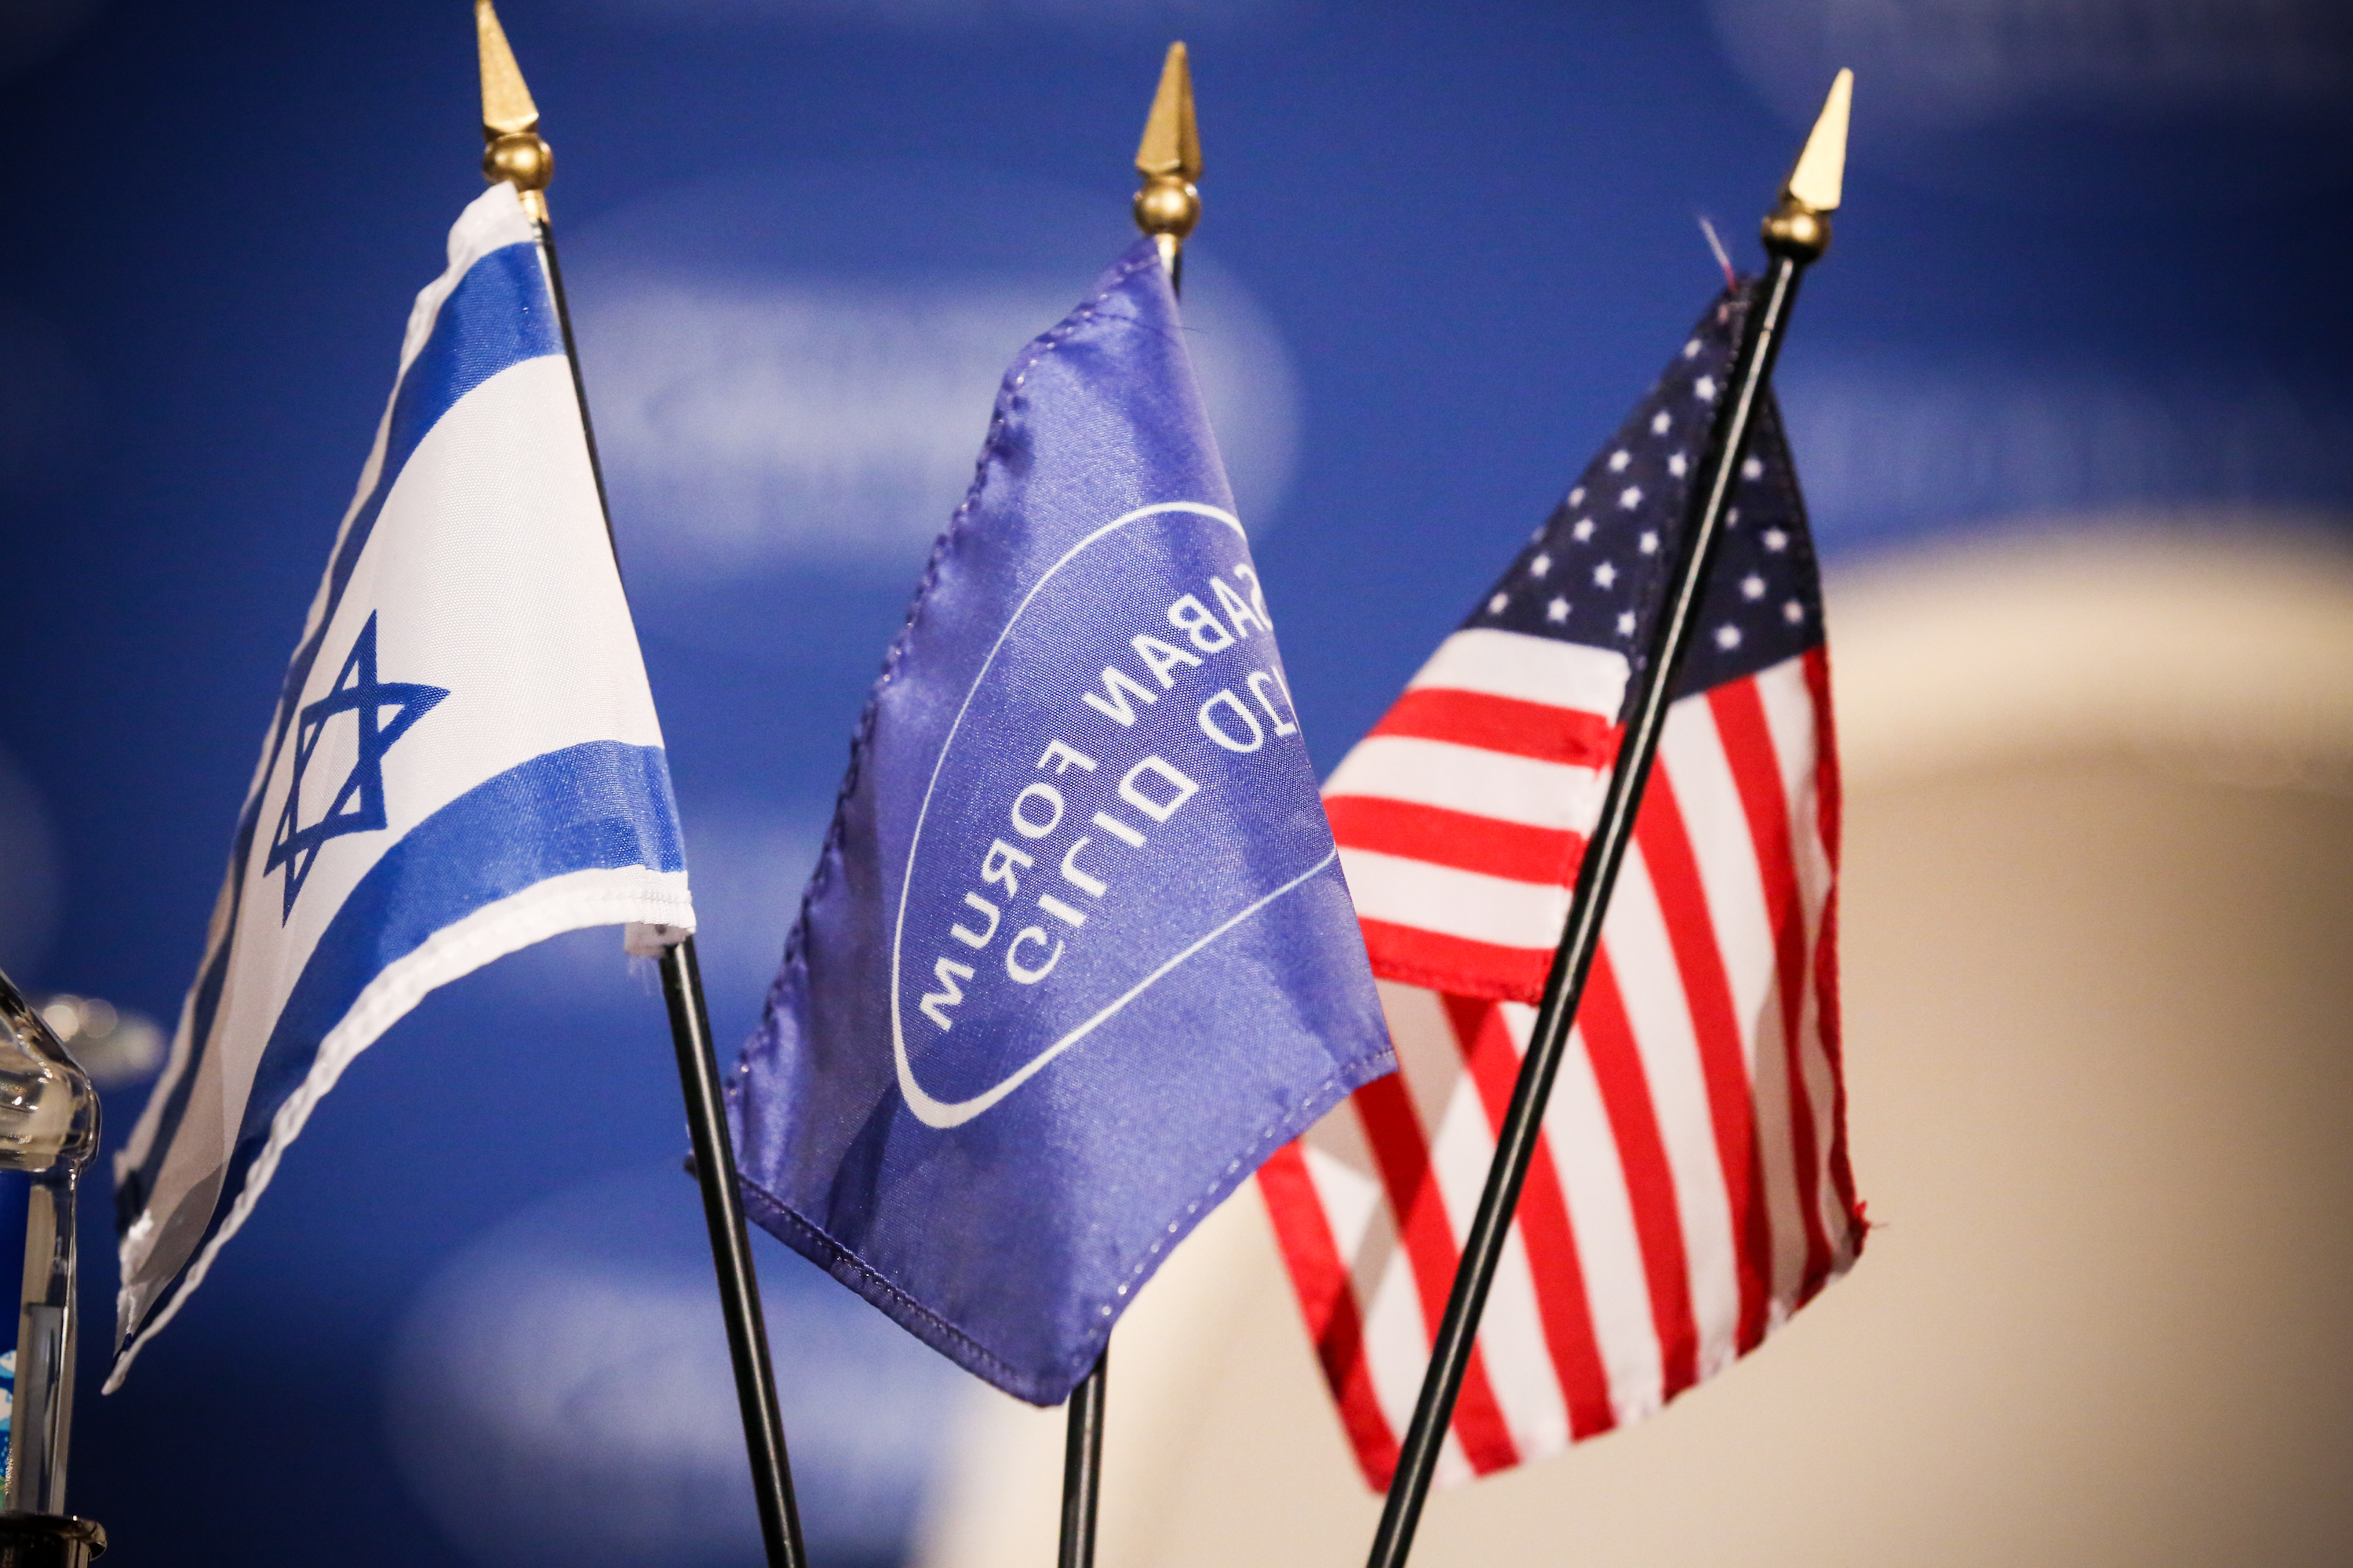 Israeli and U.S. flags sit on a table at the 2015 Saban Forum.